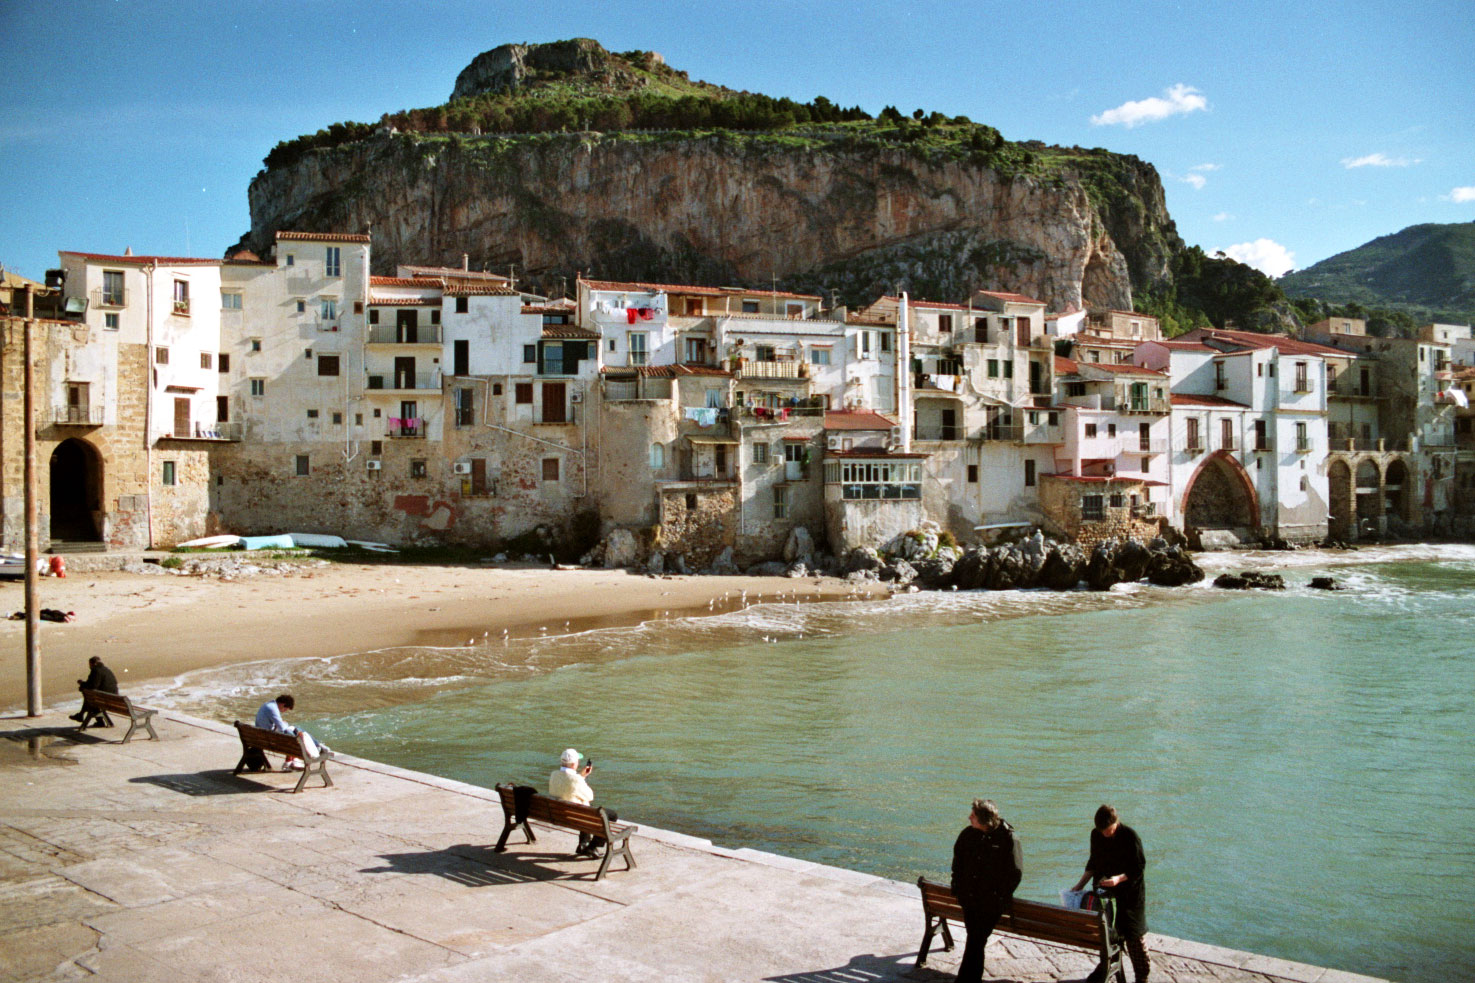 Cefalu Italy  city photo : Original file ‎ 1,475 × 983 pixels, file size: 380 KB, MIME type ...